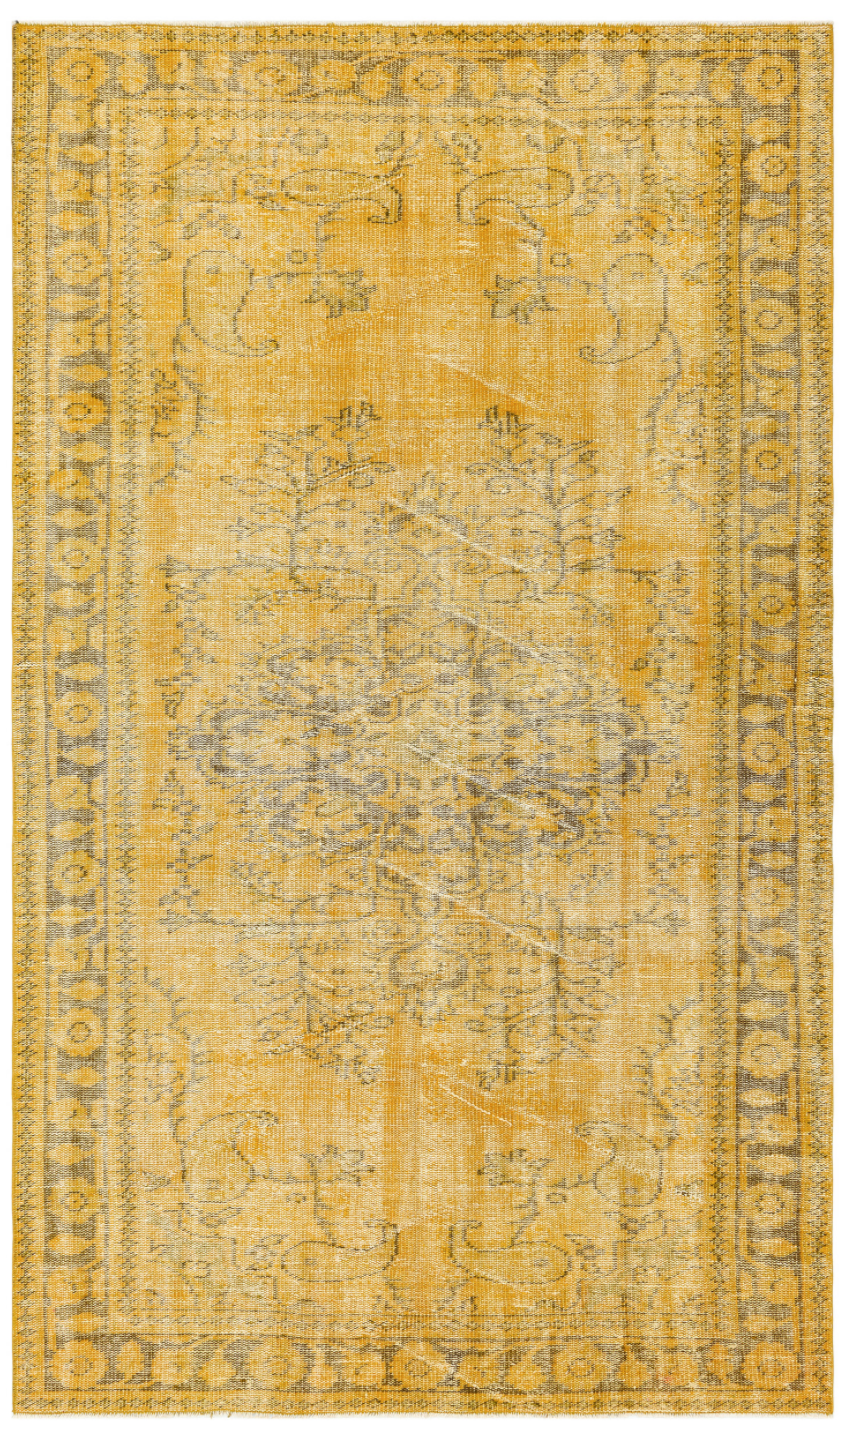 Traditional Design Yellow Over Dyed Vintage Rug 5'6'' x 9'5'' ft 168 x 287 cm